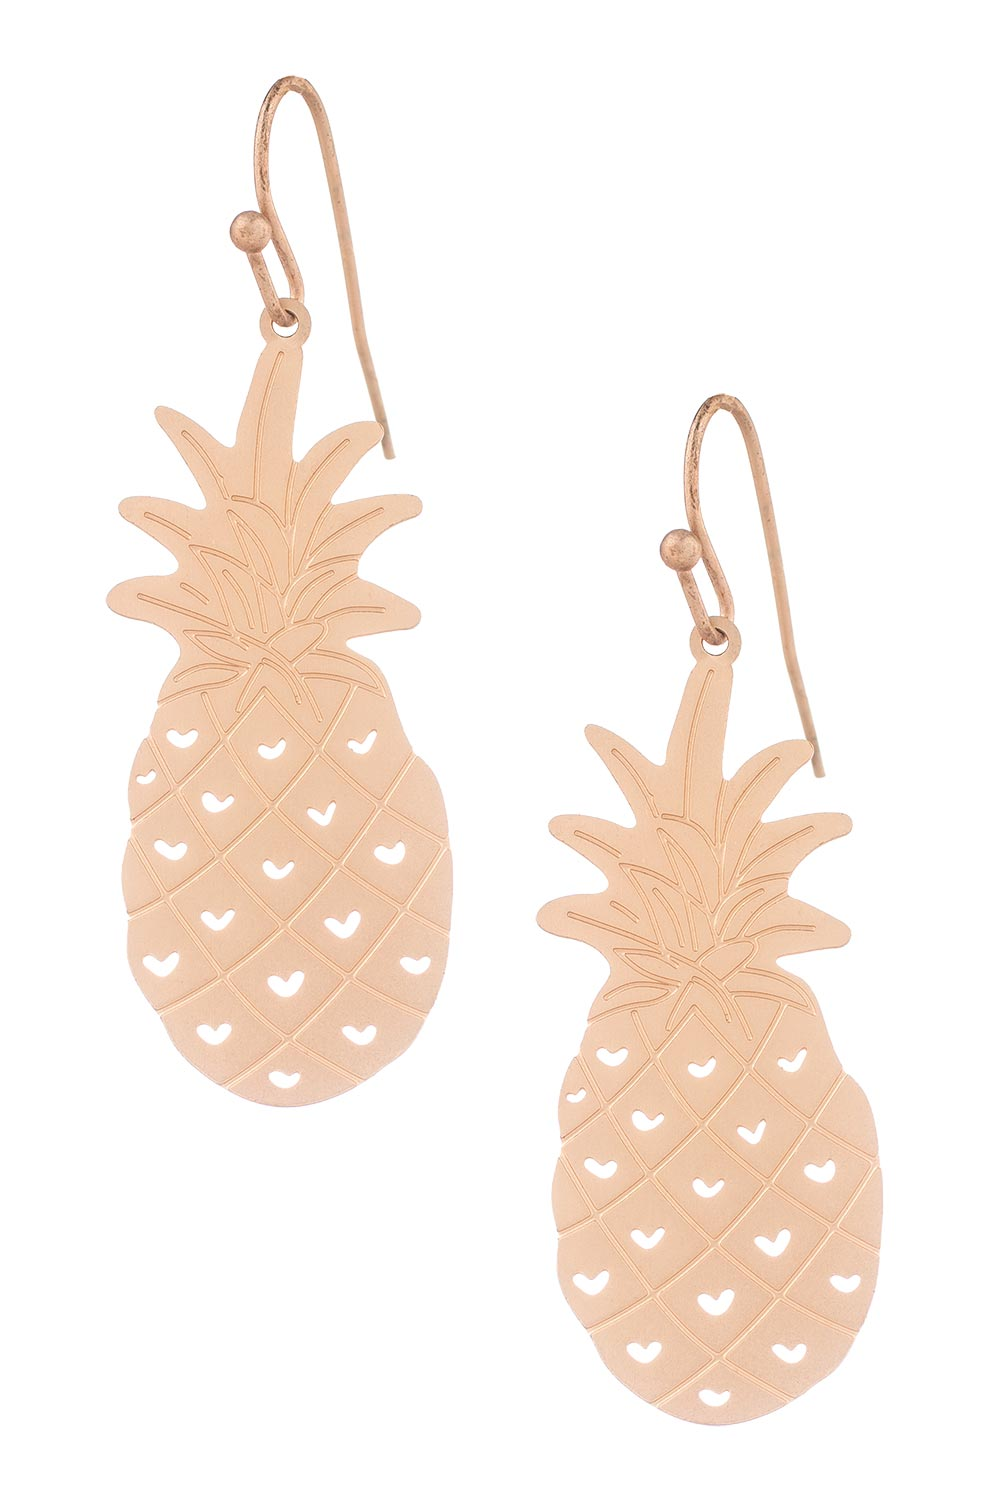 Type 1 Seriously Pineapple Earrings